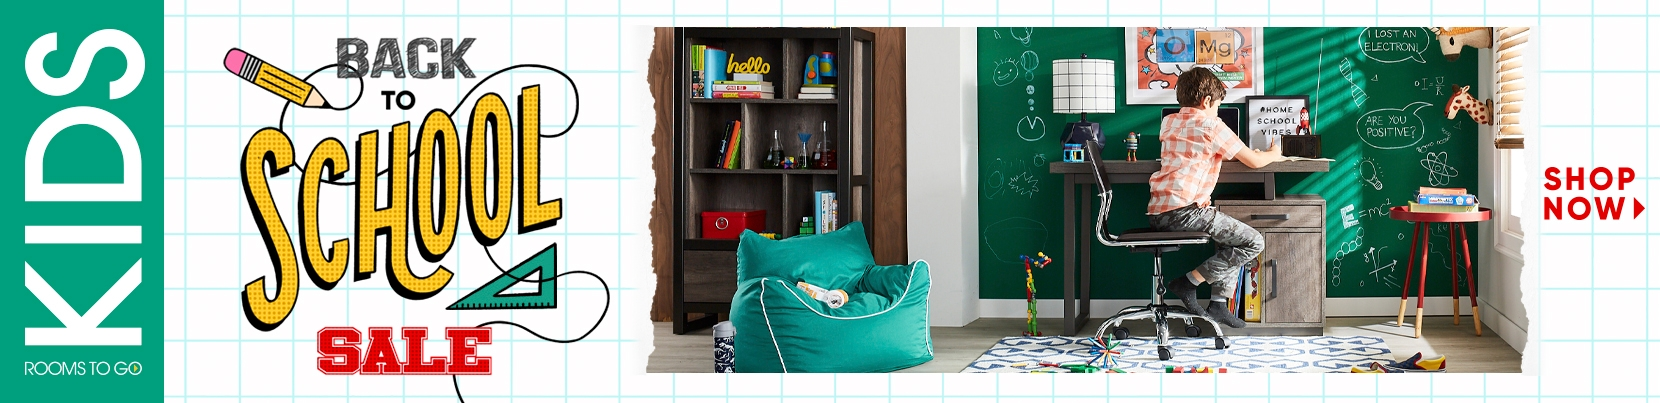 kids back to school sale. shop the sale. $50 desk with purchase of bedroom